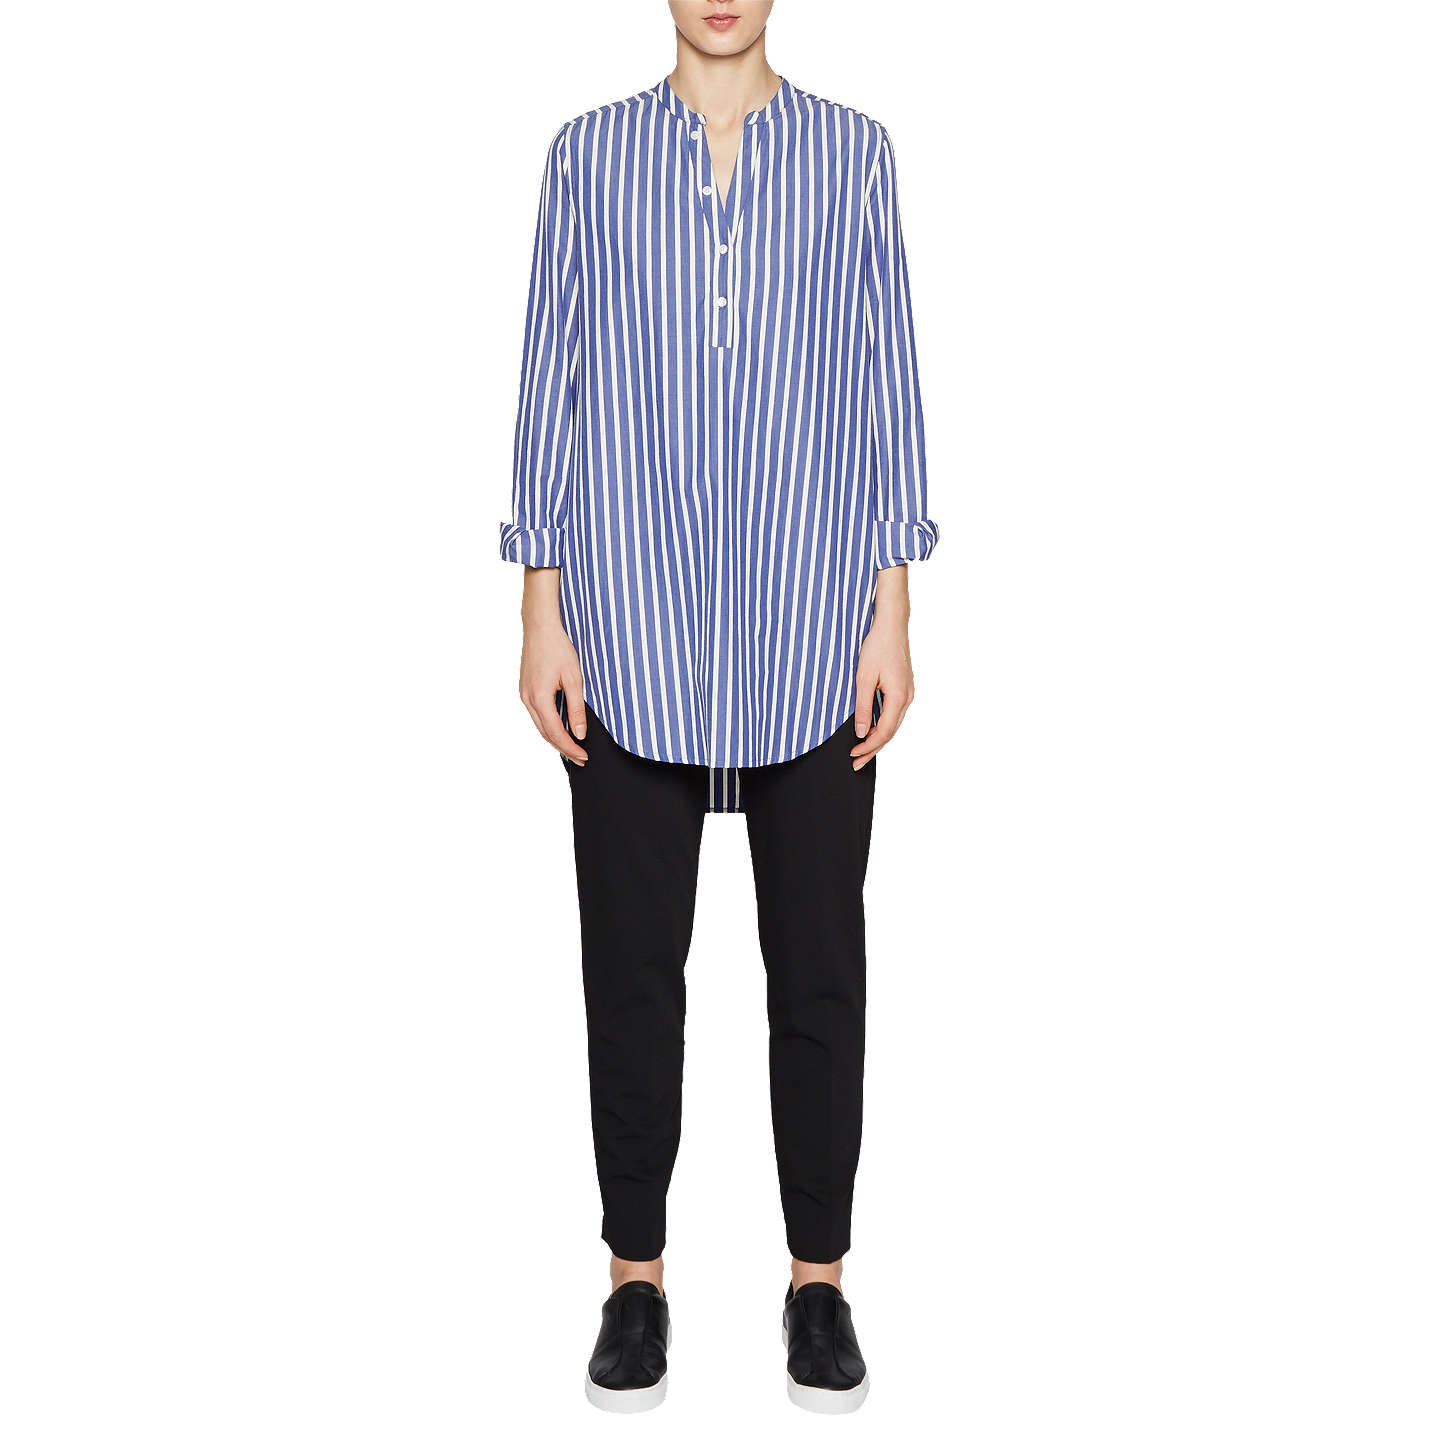 Really Cheap Price Cheap Latest Collections French Connection Cotton Pop Over Shirt Low Price Cheap Price Discount New FcblwfBNe